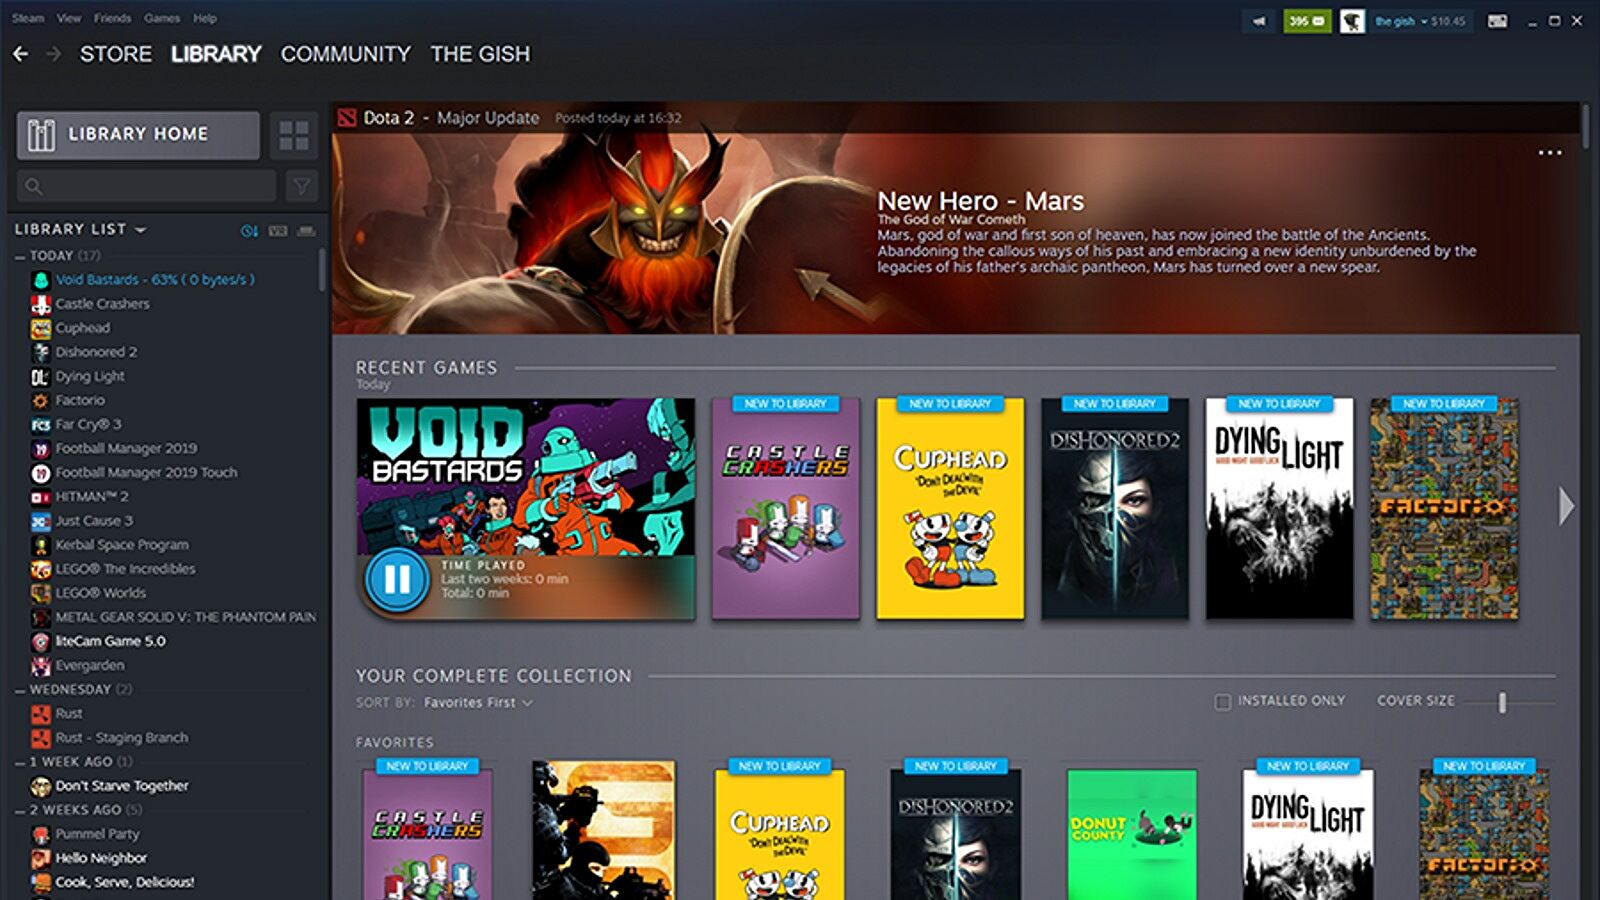 Lawsuit alleges Valve are abusing power to keep game prices high thumbnail